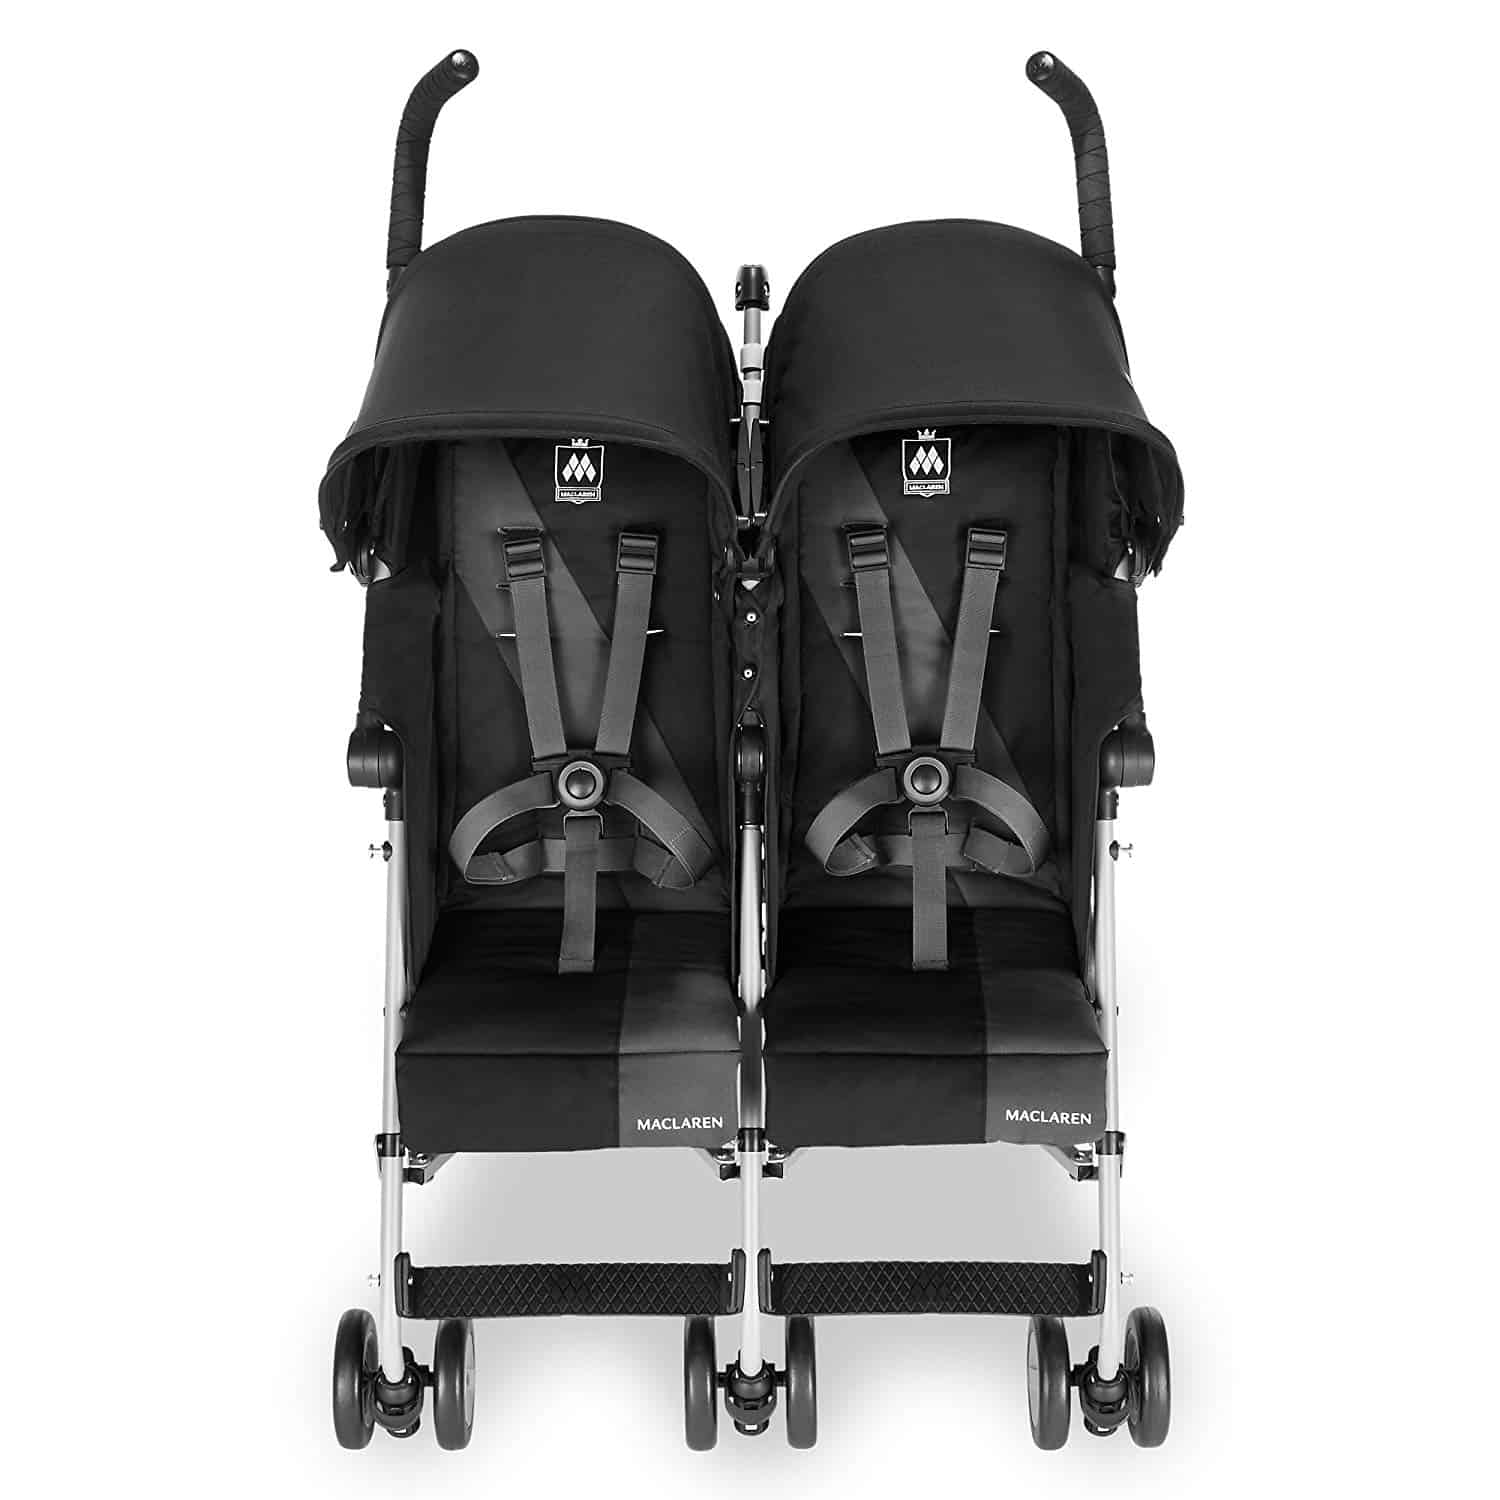 Twin Stroller Luggage Bag To fit Maclaren Pushchair Twin Techno